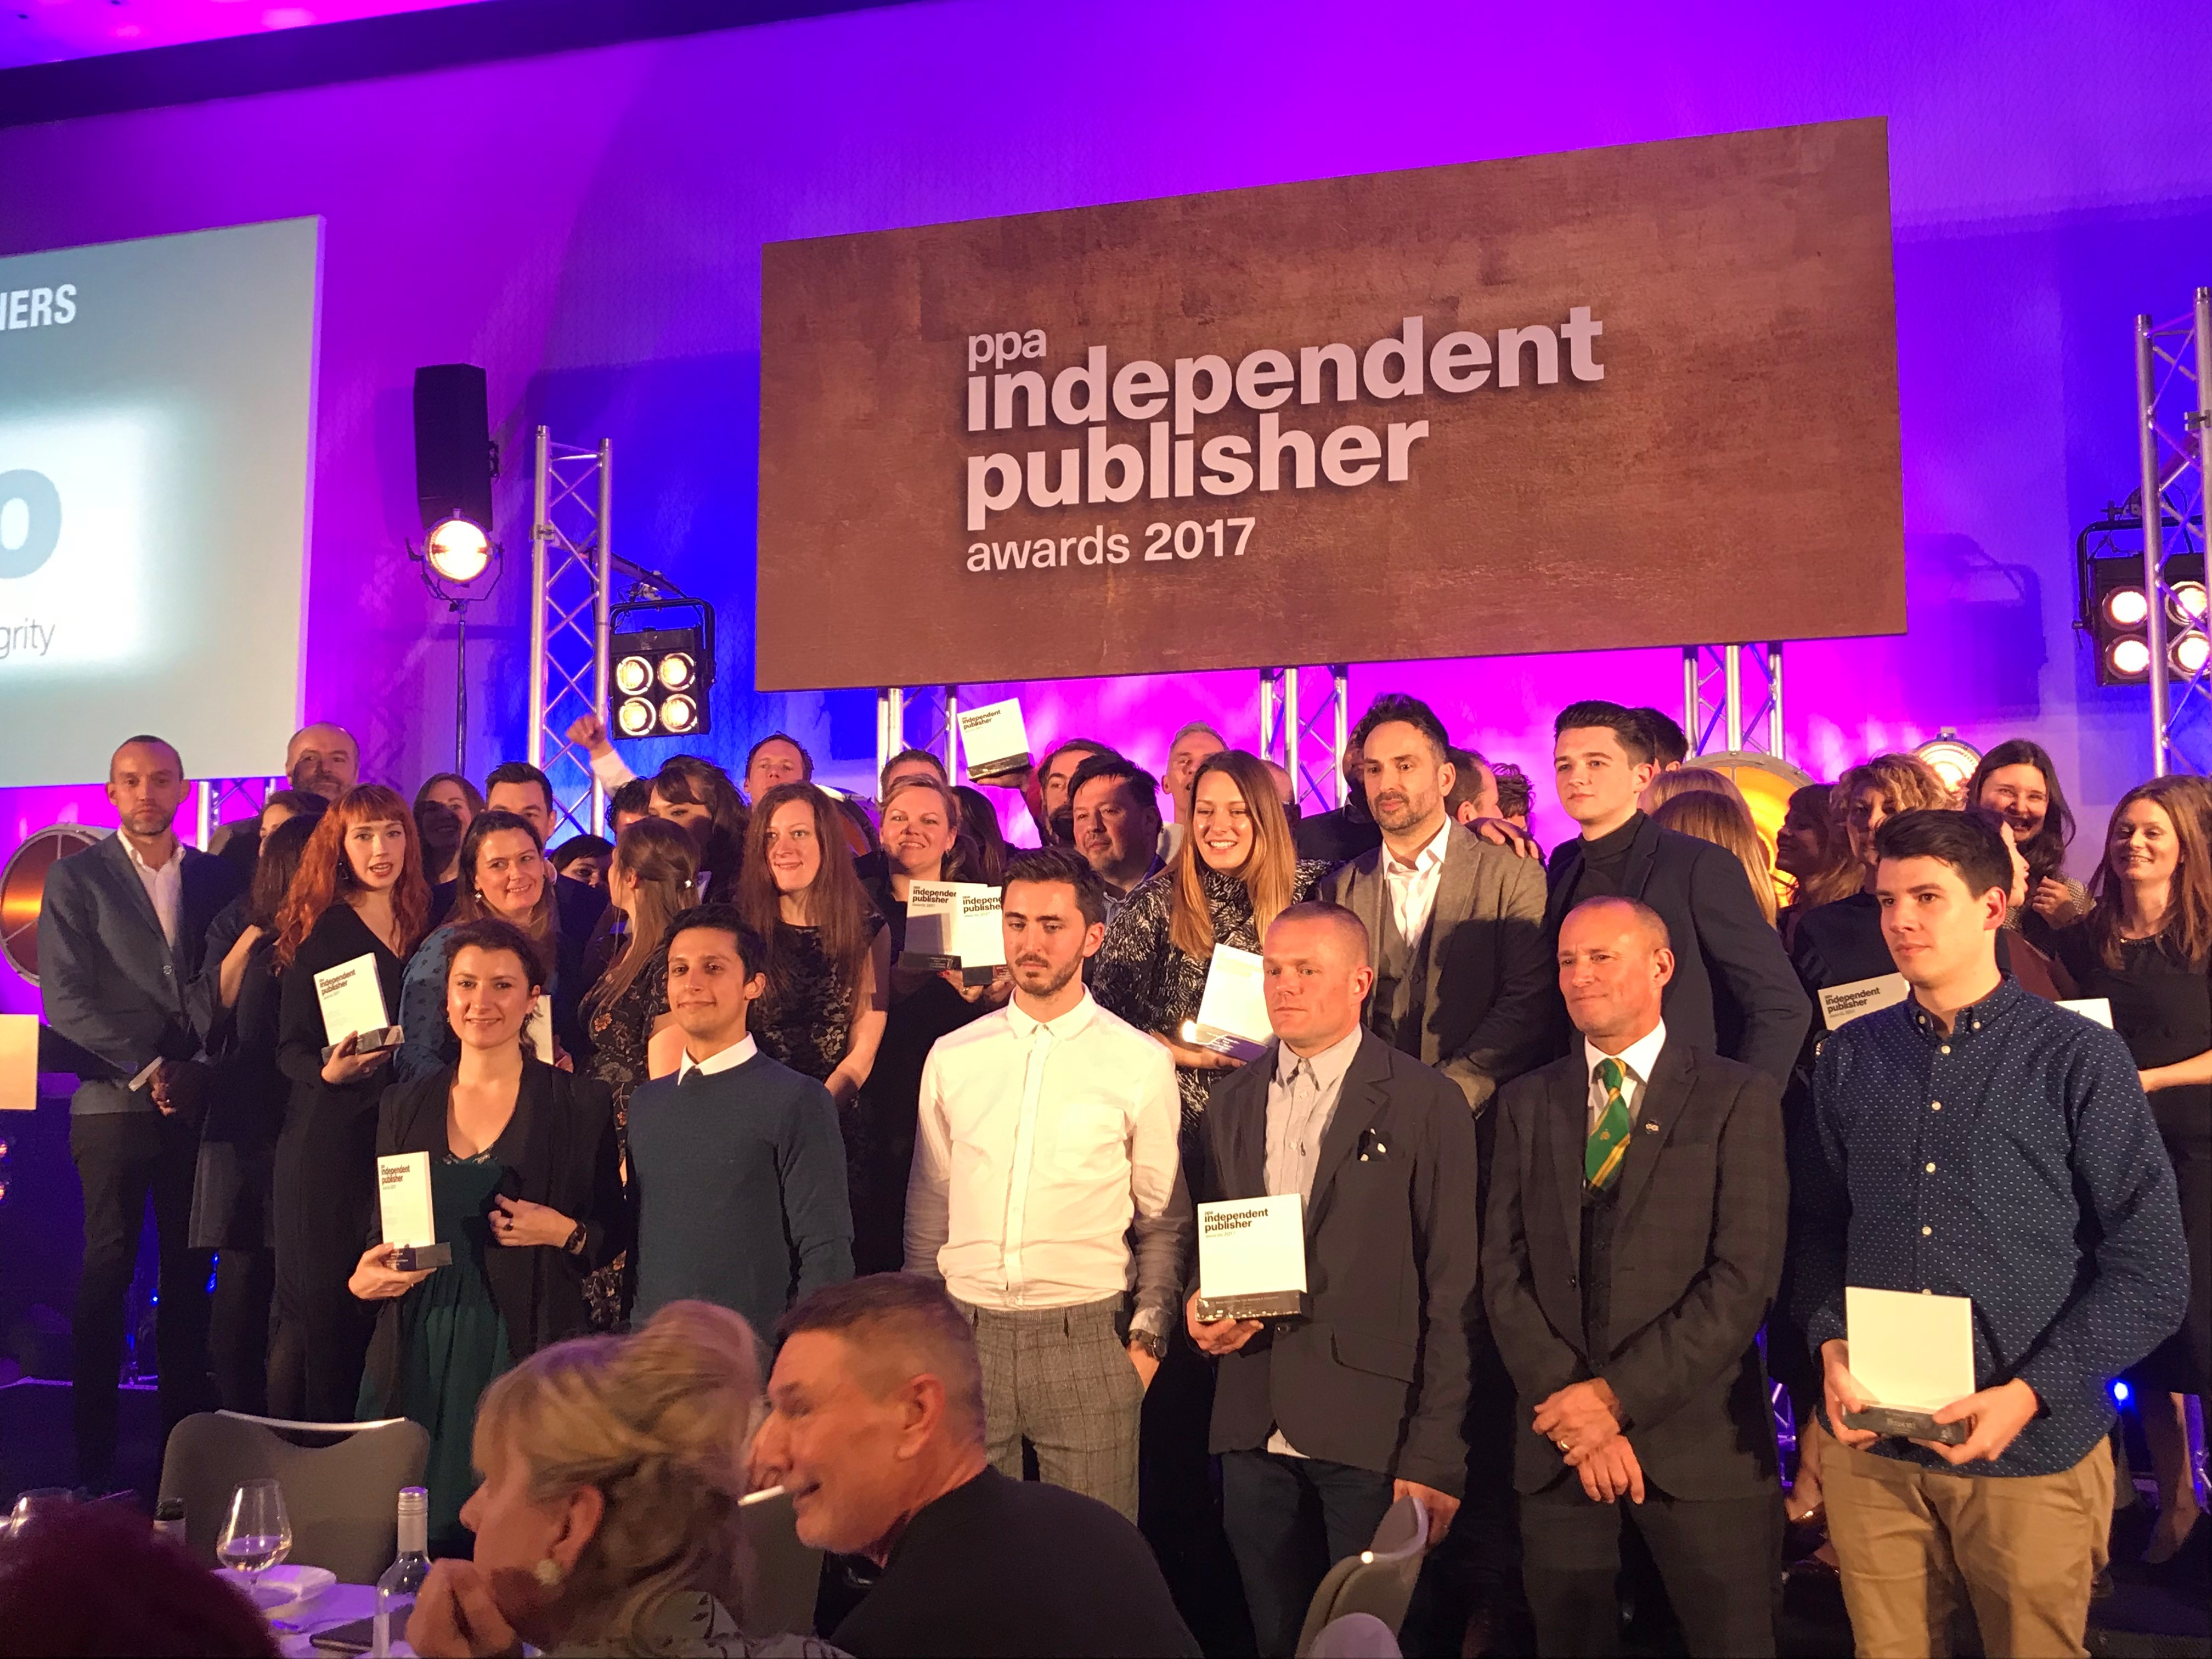 ppa independent publisher awards 2017 atwood tate